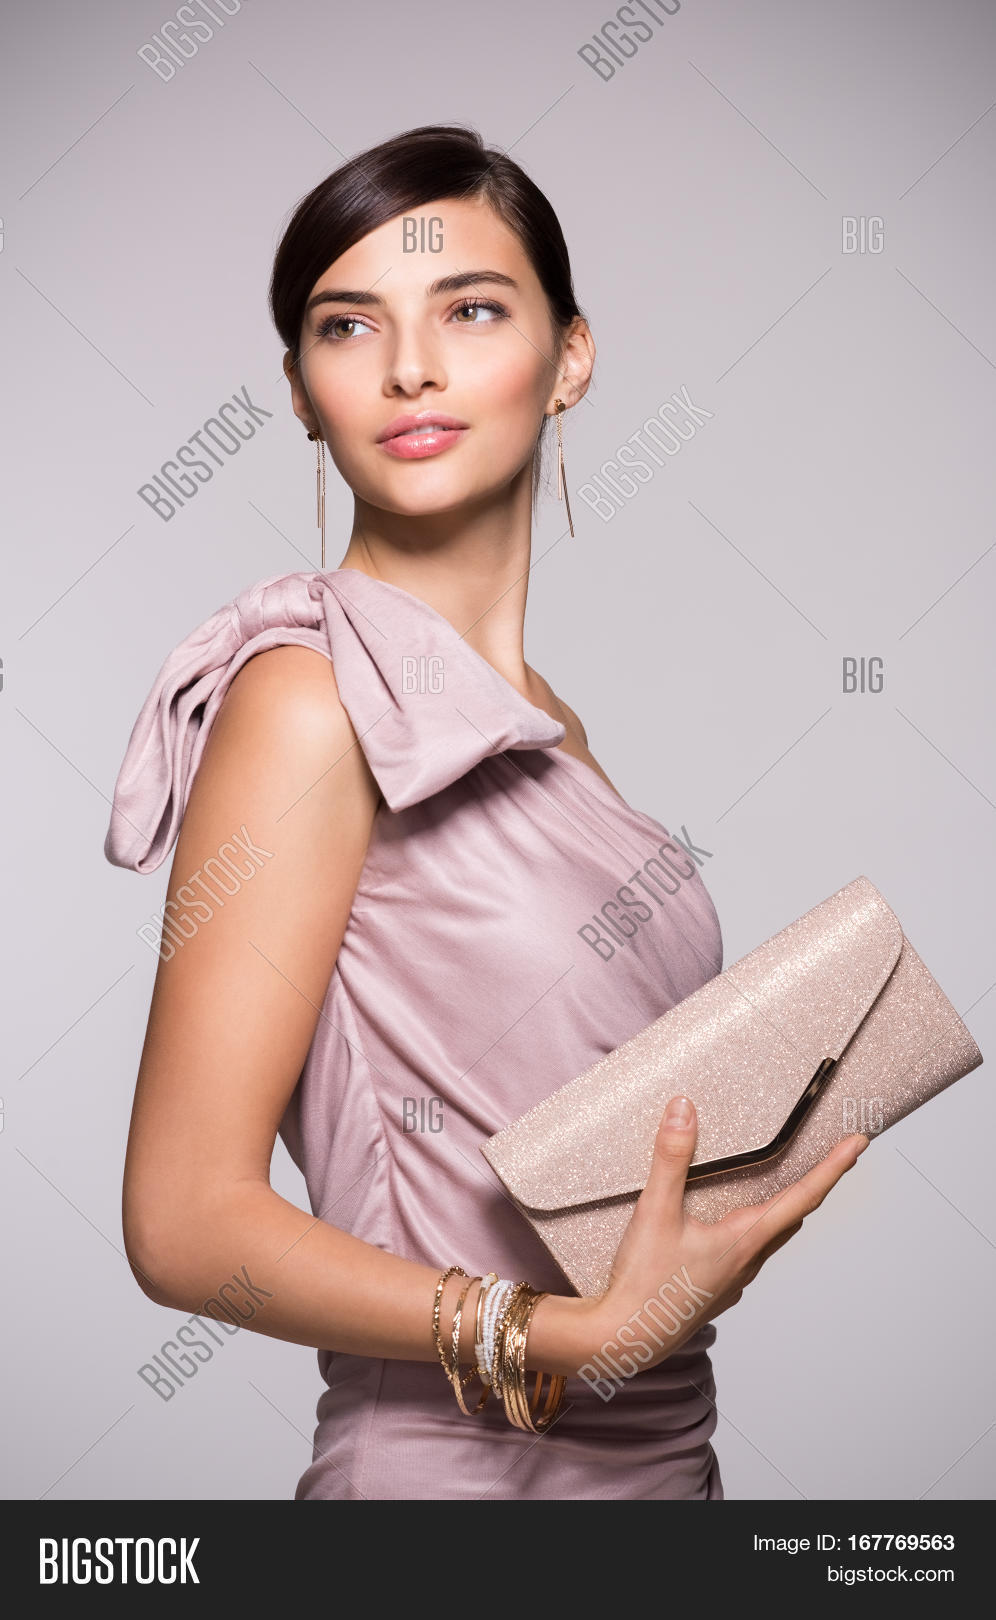 Young Beautiful Woman Image Photo Free Trial Bigstock Elegant Fashion Clutch Brown In Pink Dress Holding And Looking Away Chic